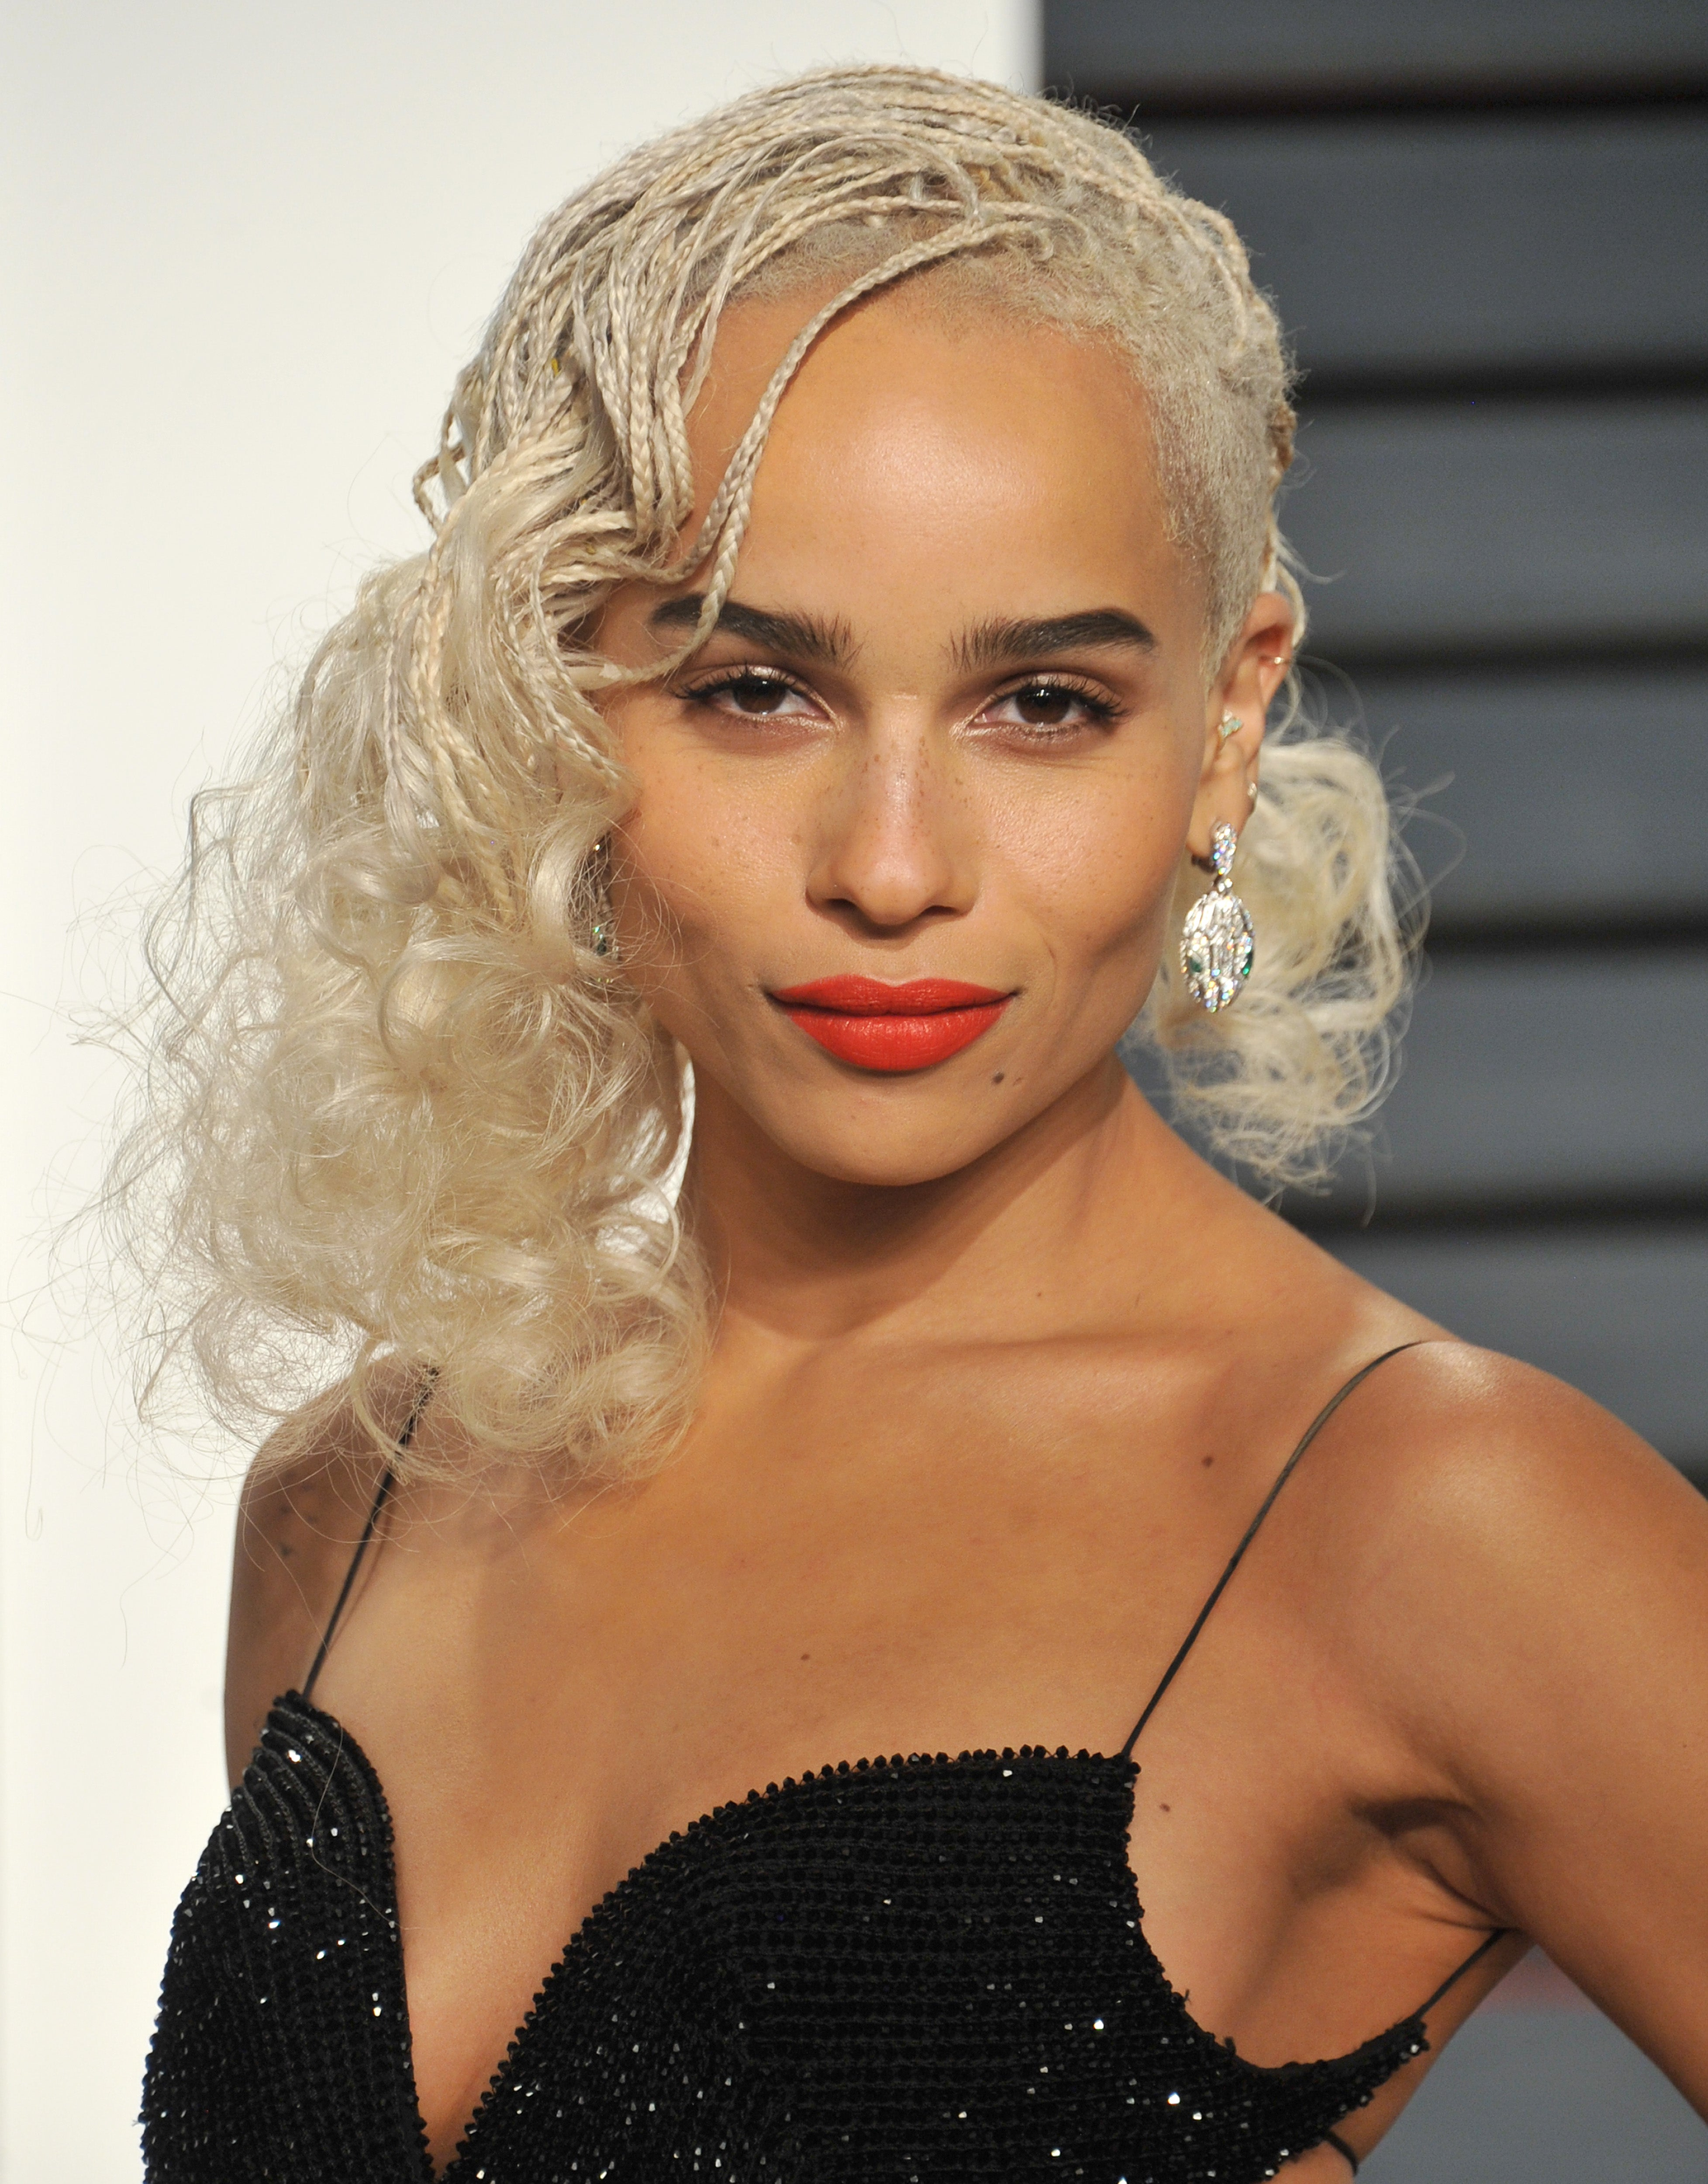 Zoe Kravitz Just Chopped Off Her Braids and Looks Gorgeous, Obvs